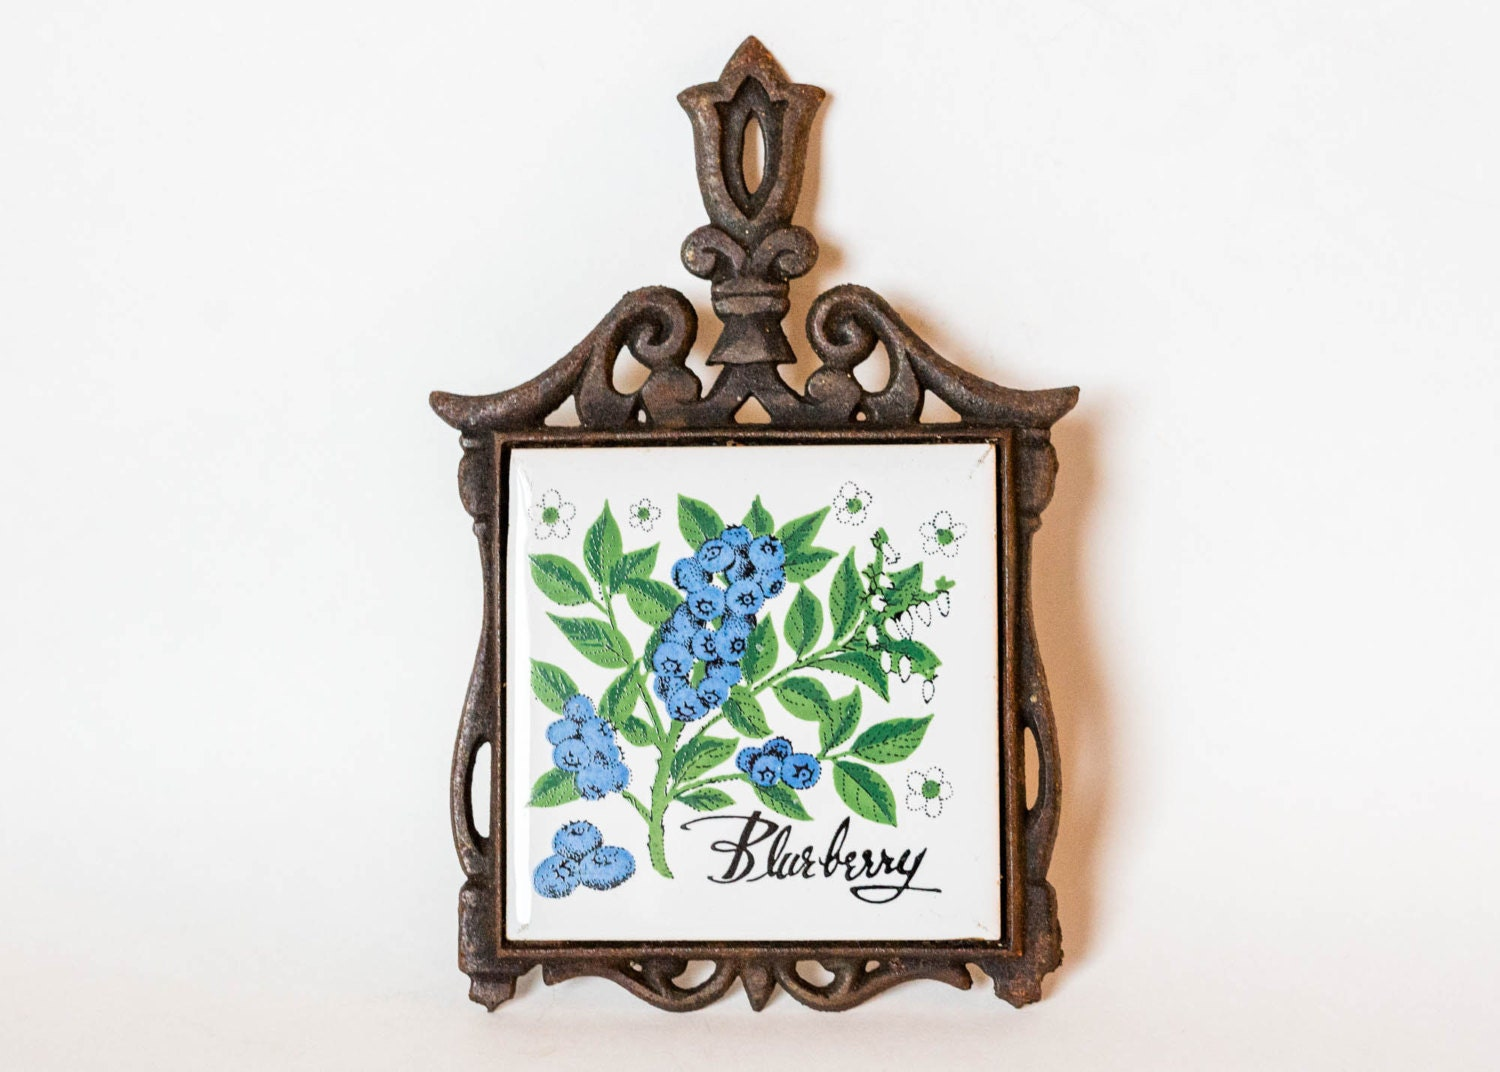 Vintage Cast Iron Ceramic Tile Trivet With Blueberries